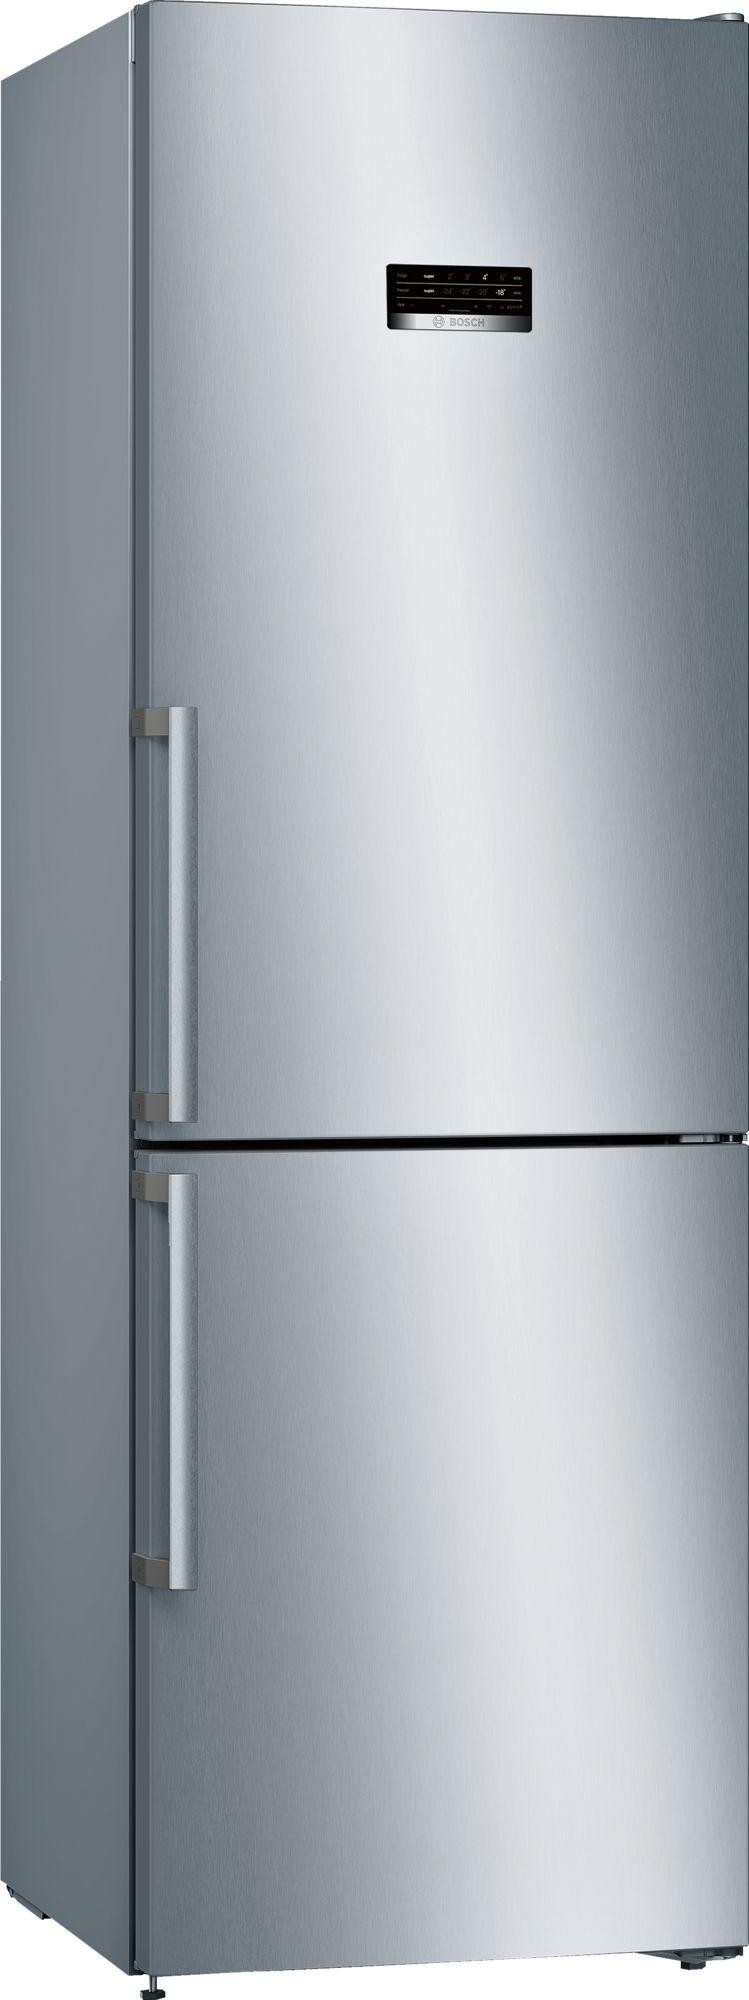 Bosch KGN36XLER Fridge Freezer